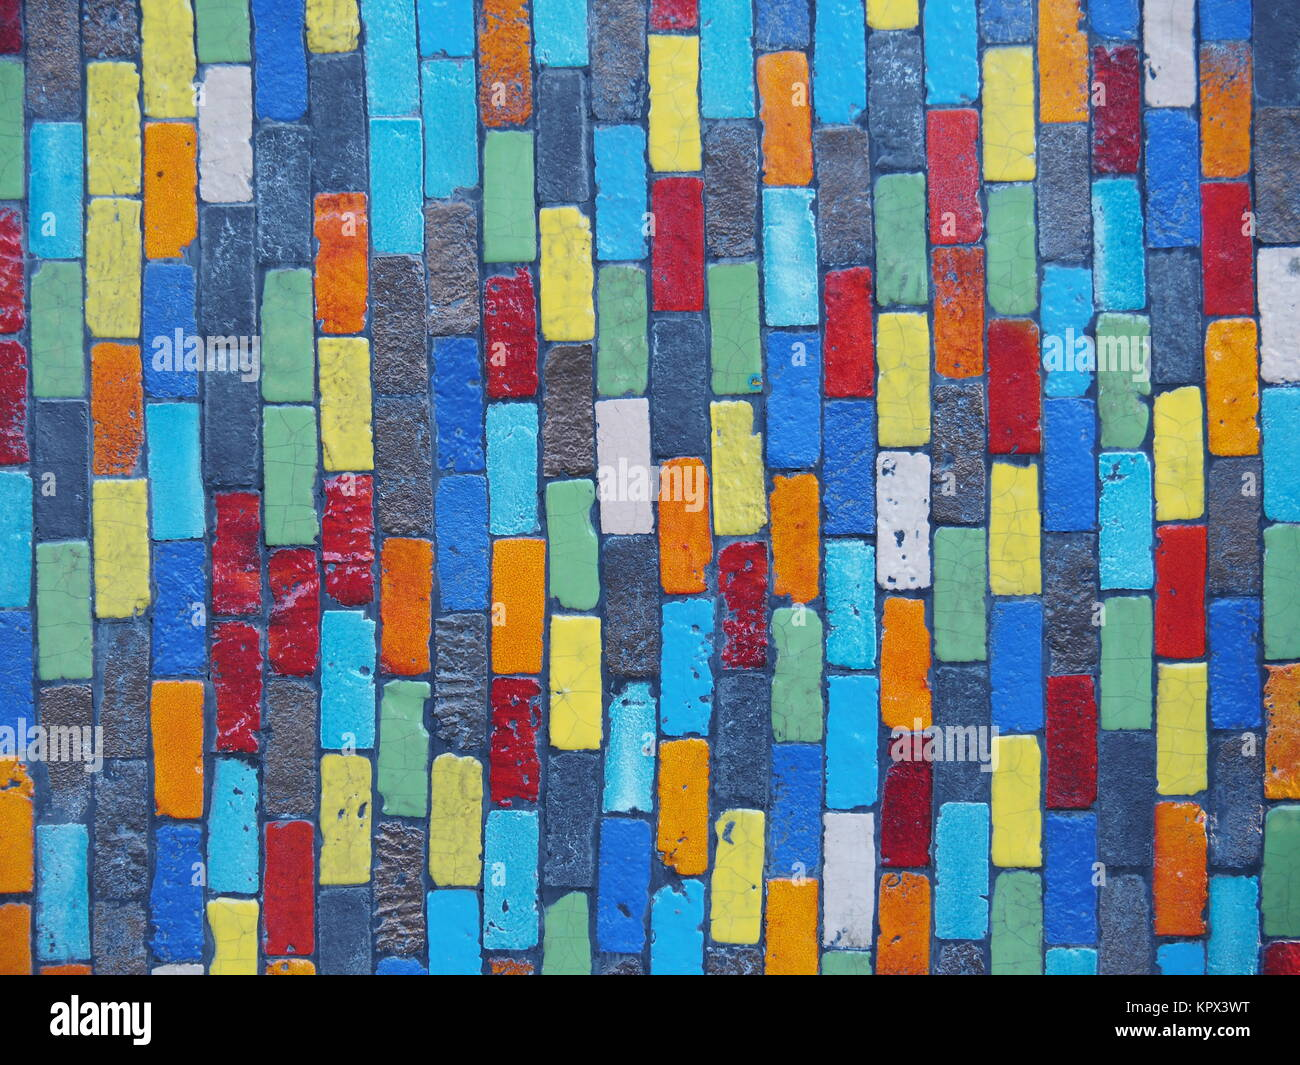 Colorful Wall Tiles Background - Stock Image